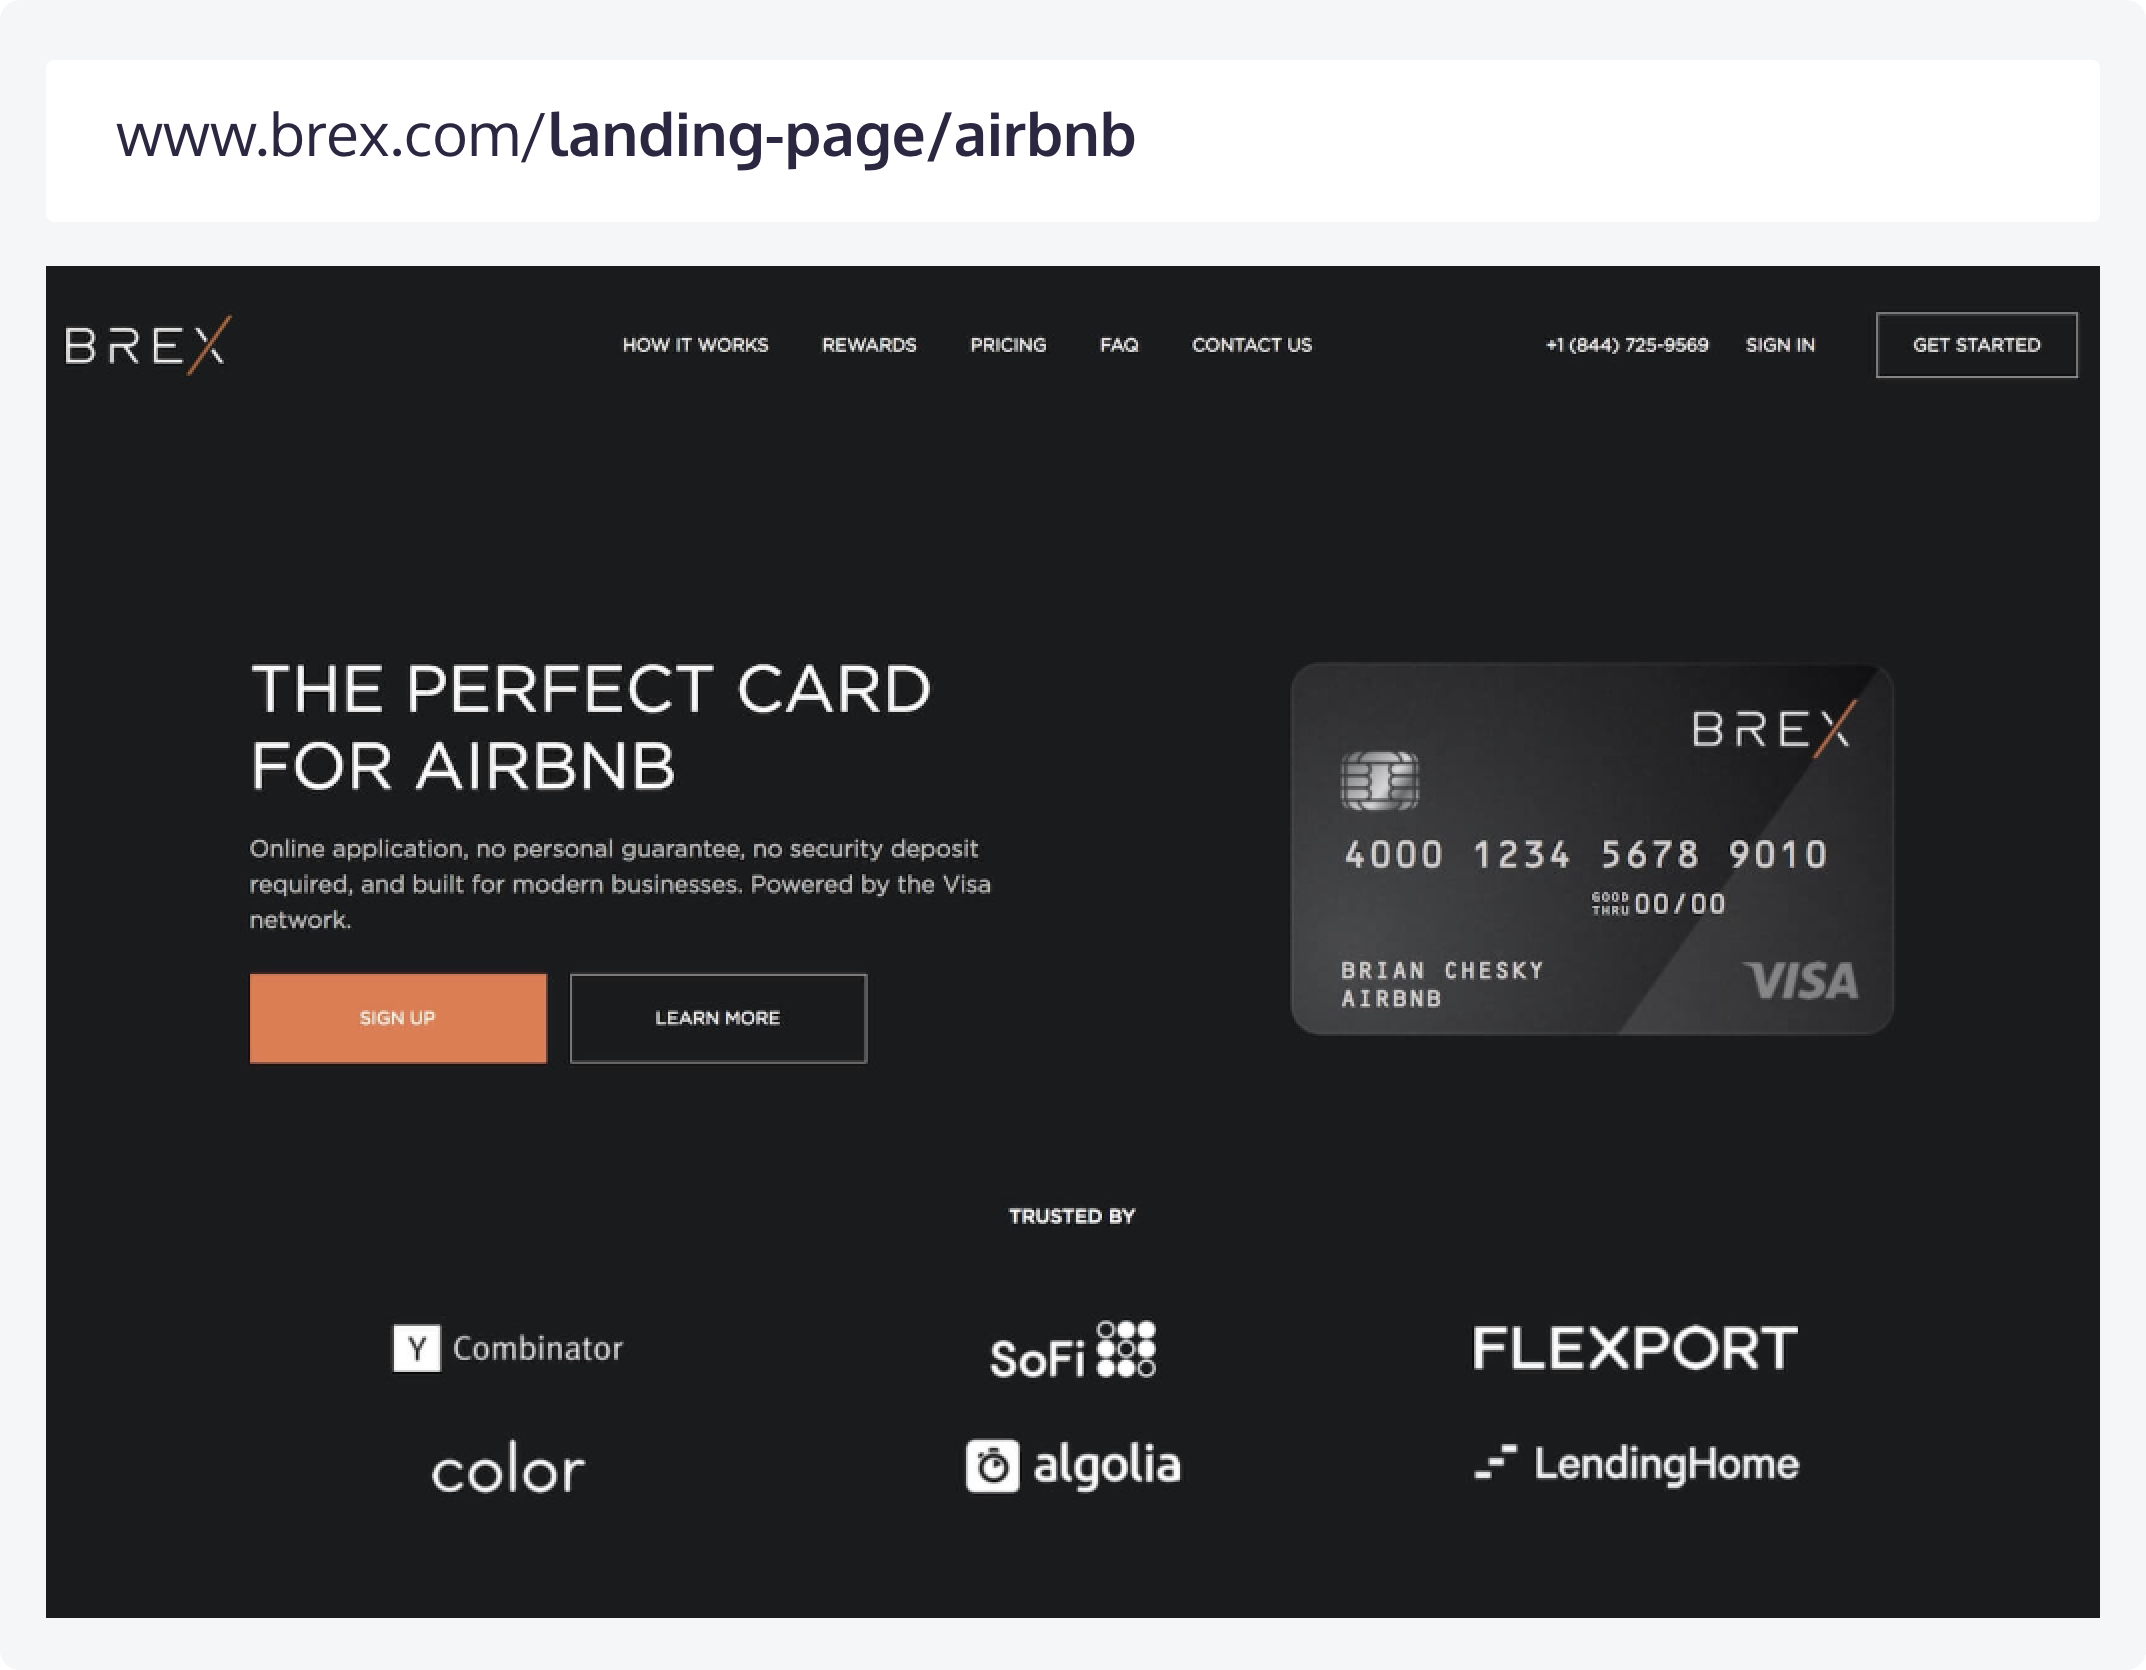 A campaign landing page used by Brex and its corresponding URL